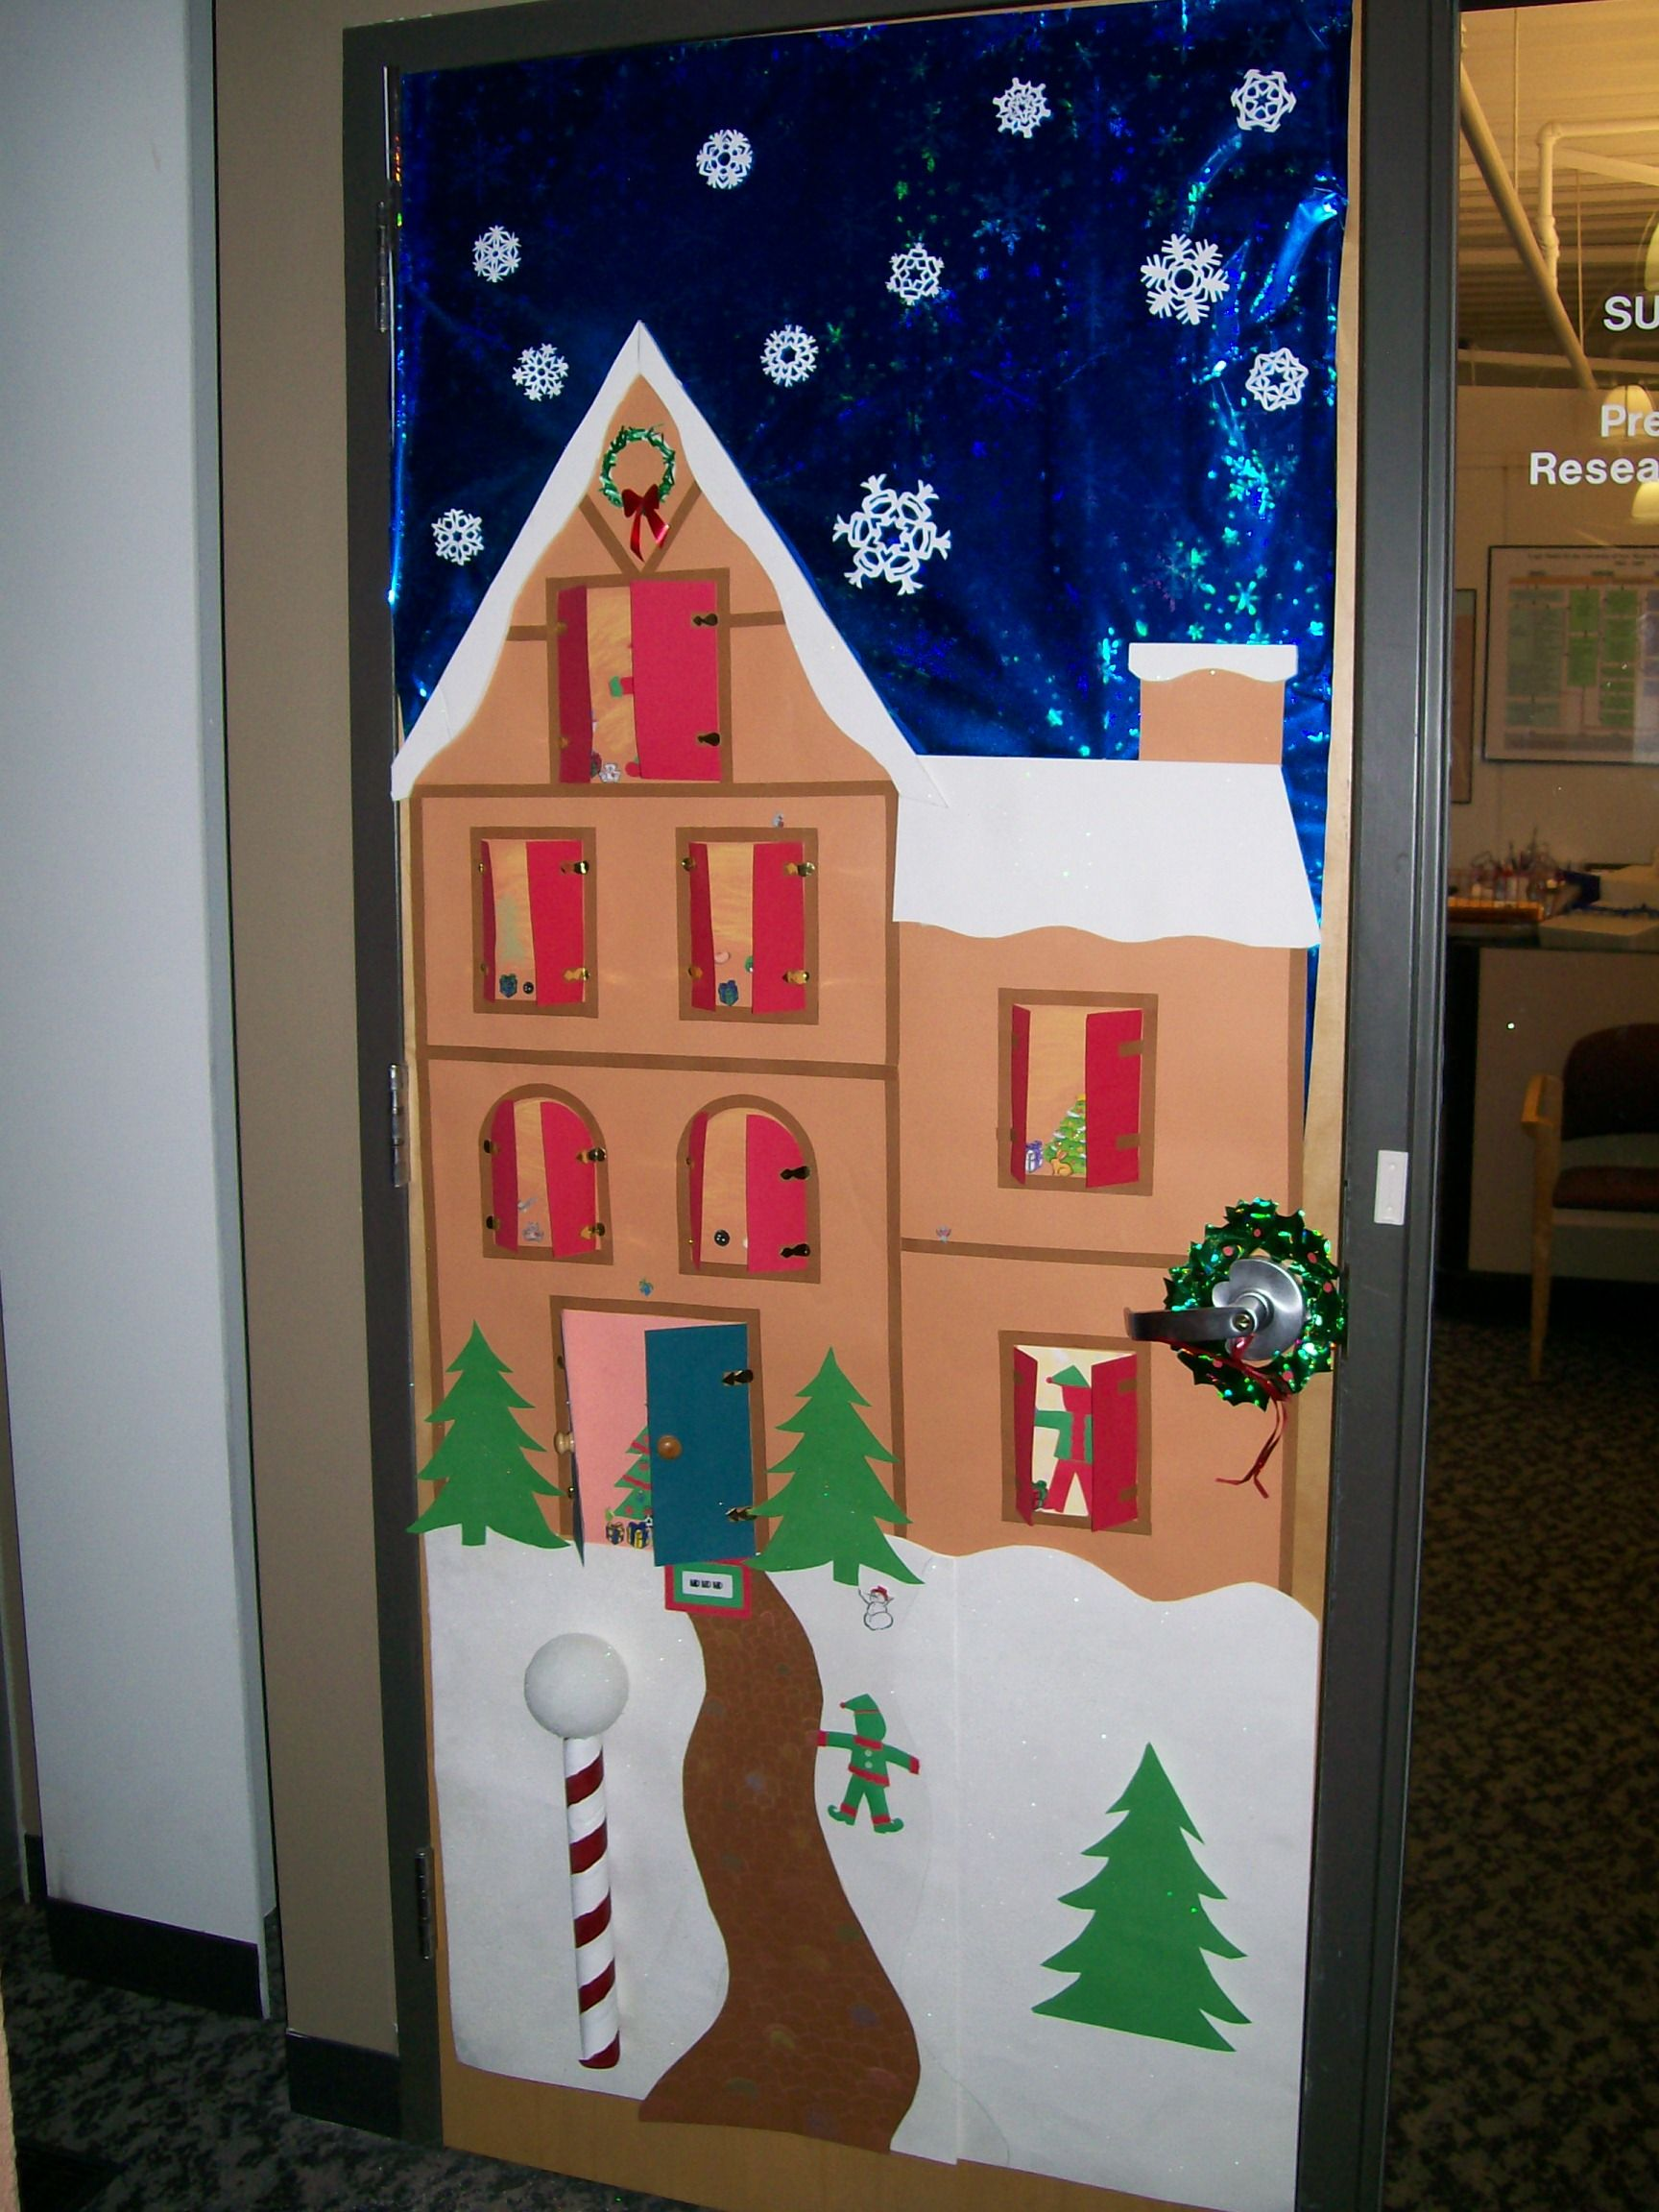 Exceptional Holiday Door Decorating Ideas For The Office Part - 5: Christmas+Classroom+Door+Decorating+Contest | Heard From Karen Today. So.  Office Christmas DecorationsSchool Door DecorationsHoliday ...